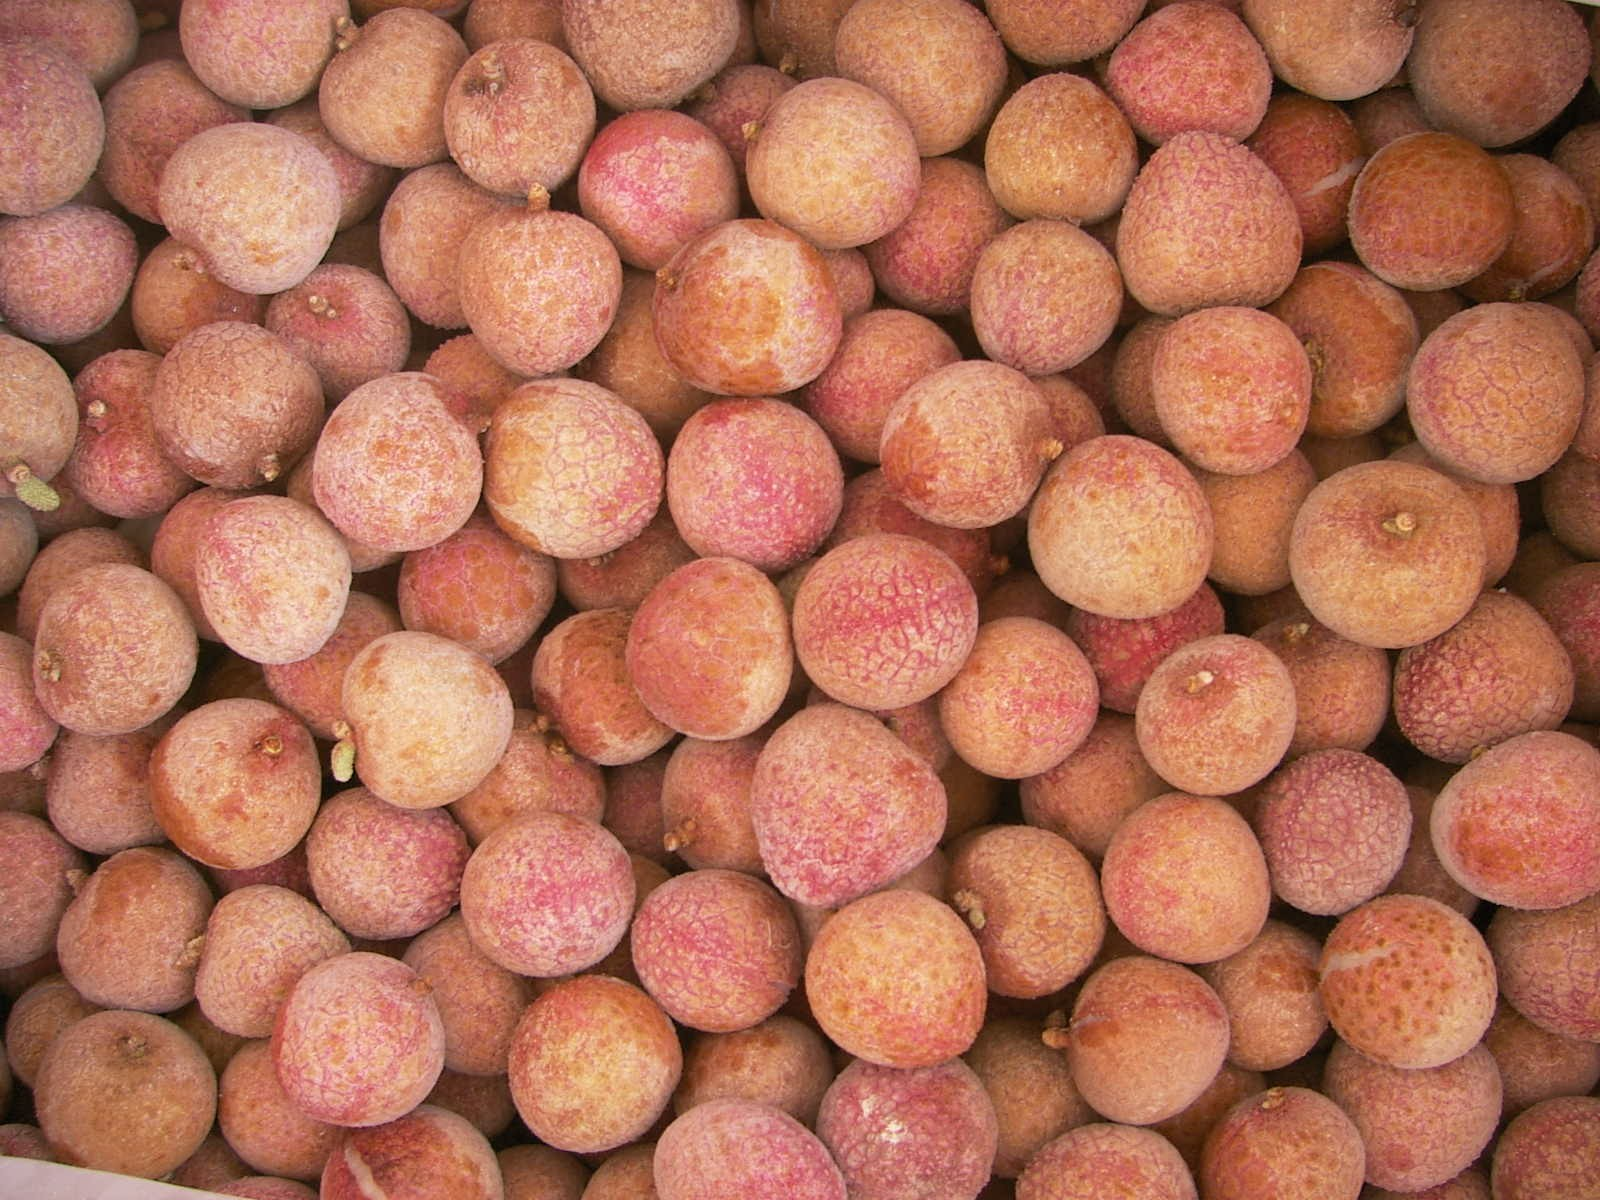 IQF Frozen Lychee Manufacturers, IQF Frozen Lychee Factory, Supply IQF Frozen Lychee